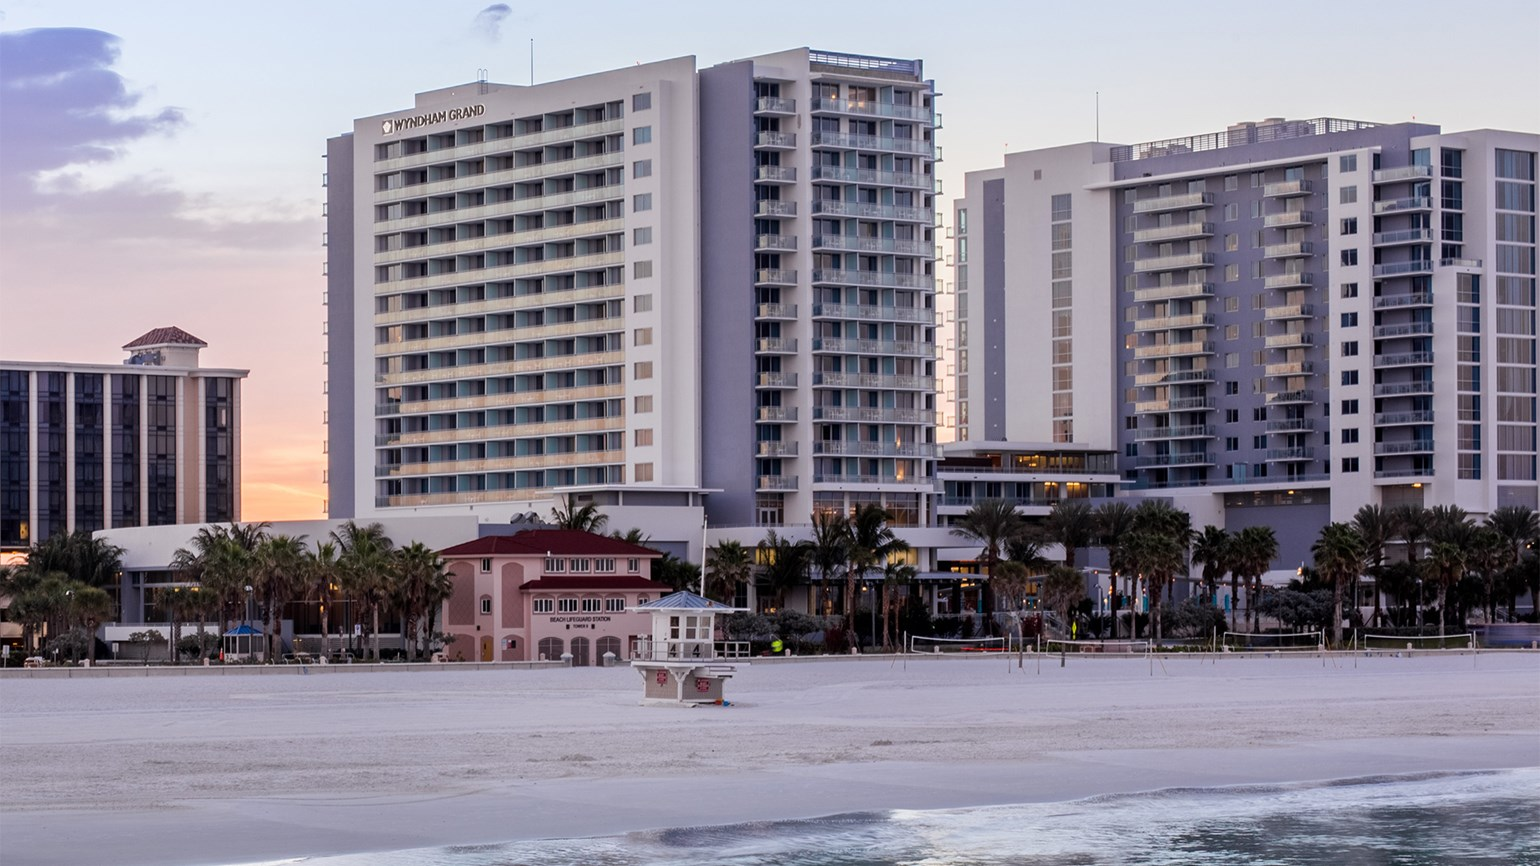 Wyndham opens on Clearwater Beach Travel Weekly